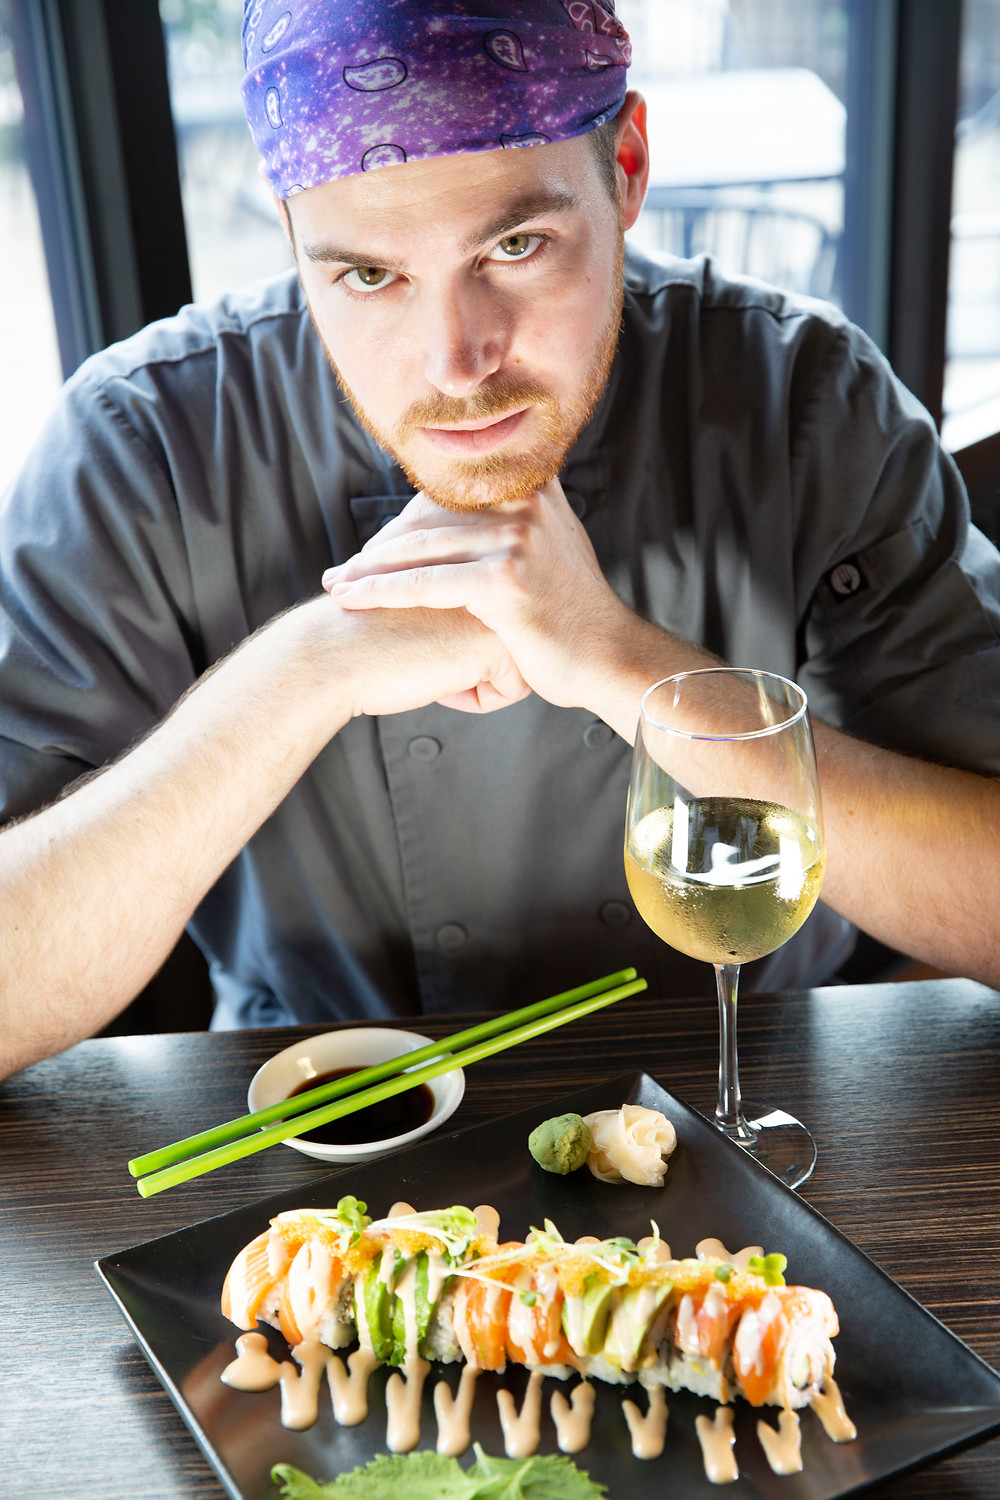 A young chef displays his handiwork, a sushi summertime roll with a spicy orange colored sauce zigzigged down the roll and a glass of white wine